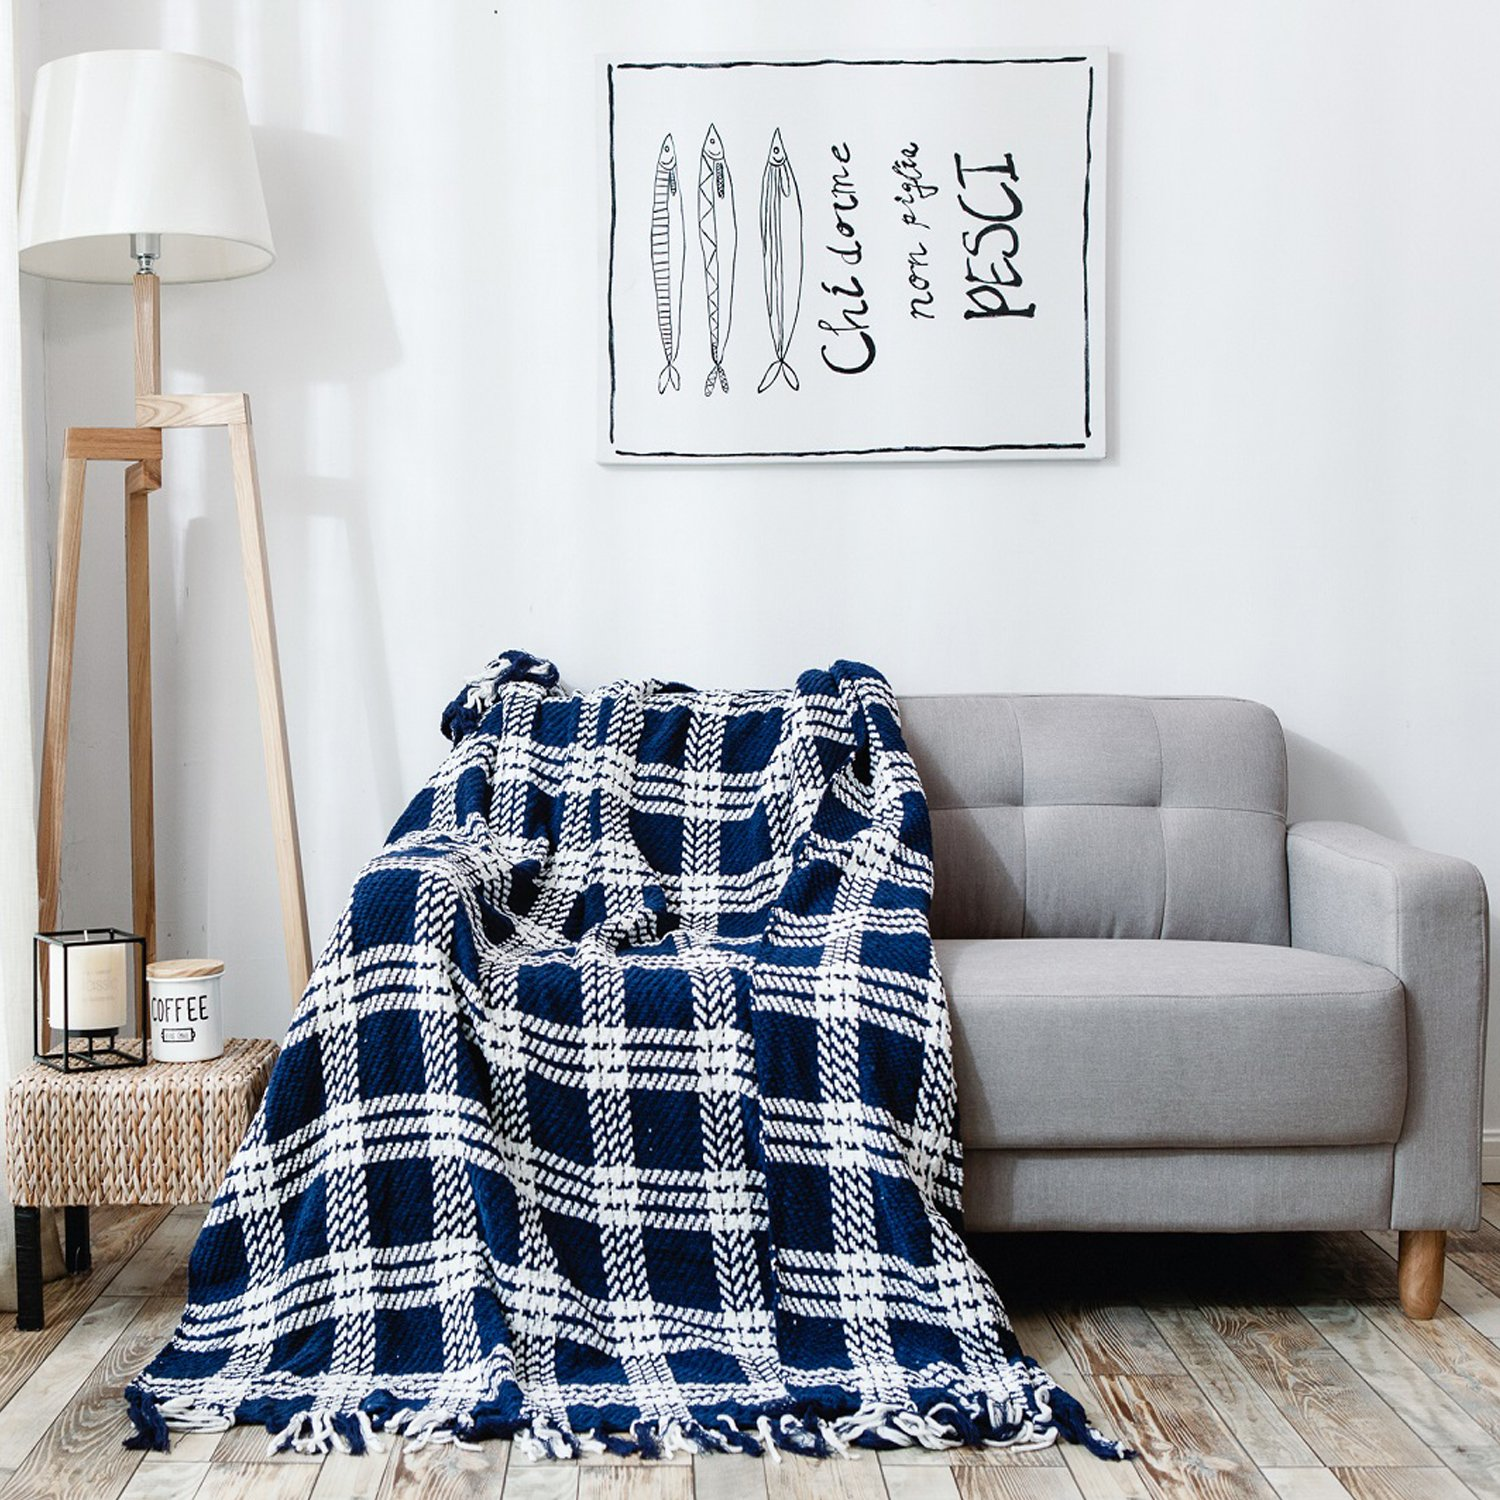 HollyHOME Throw Blanket Plaid Stripe Knitting 60x70 Inches Luxury Soft Microfiber All Season Blanket with Tassels, Ideal for Bed or Couch, Navy Blue